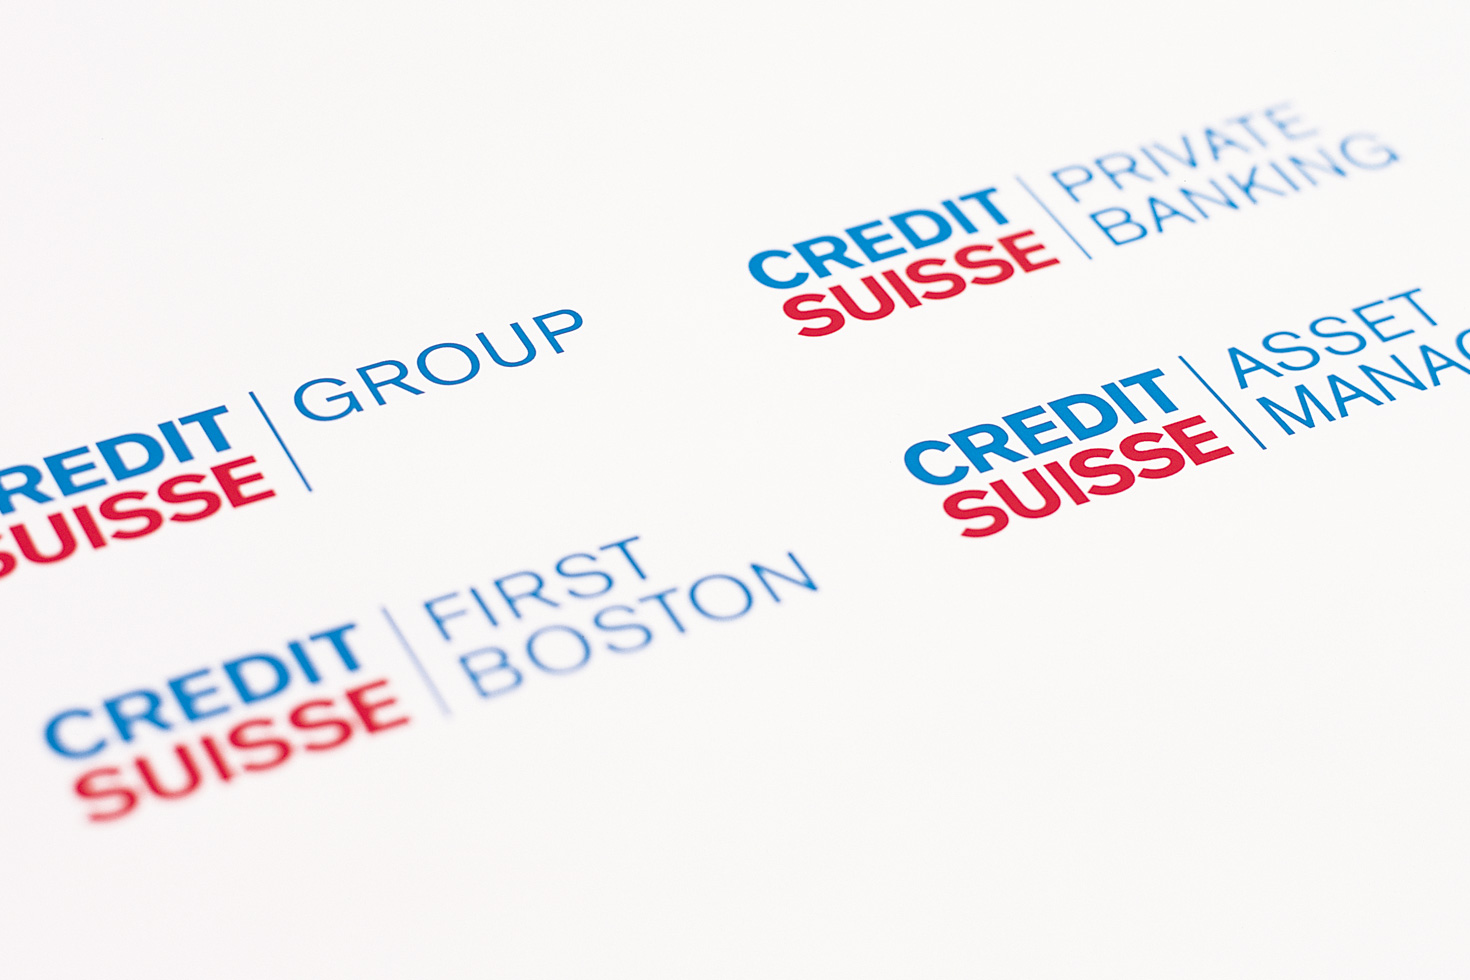 Credit Suisse logo groups